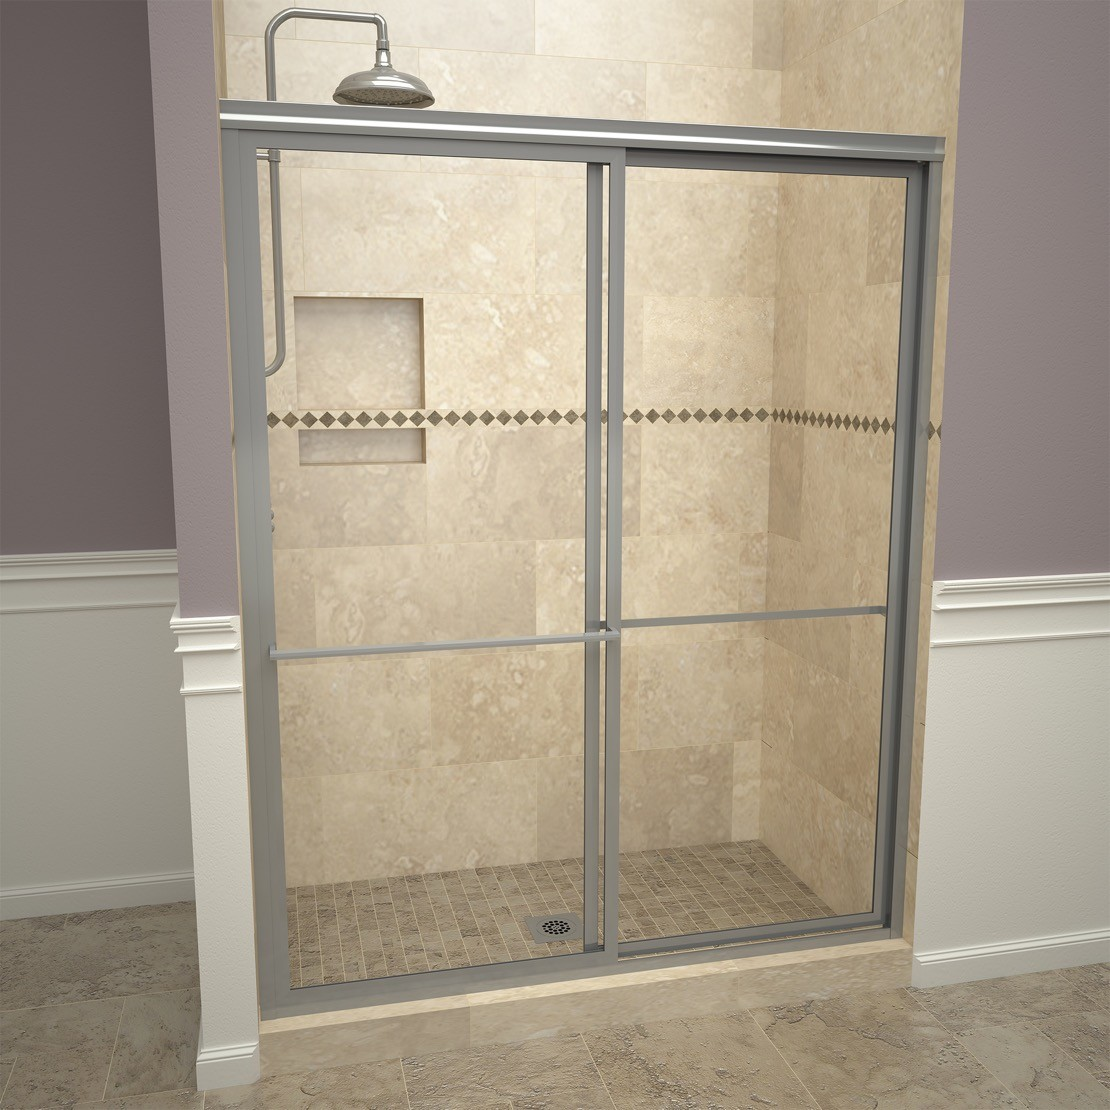 30D x 48W Shower Kit Redi Base Shower Pan & 1100V Series Door with ...